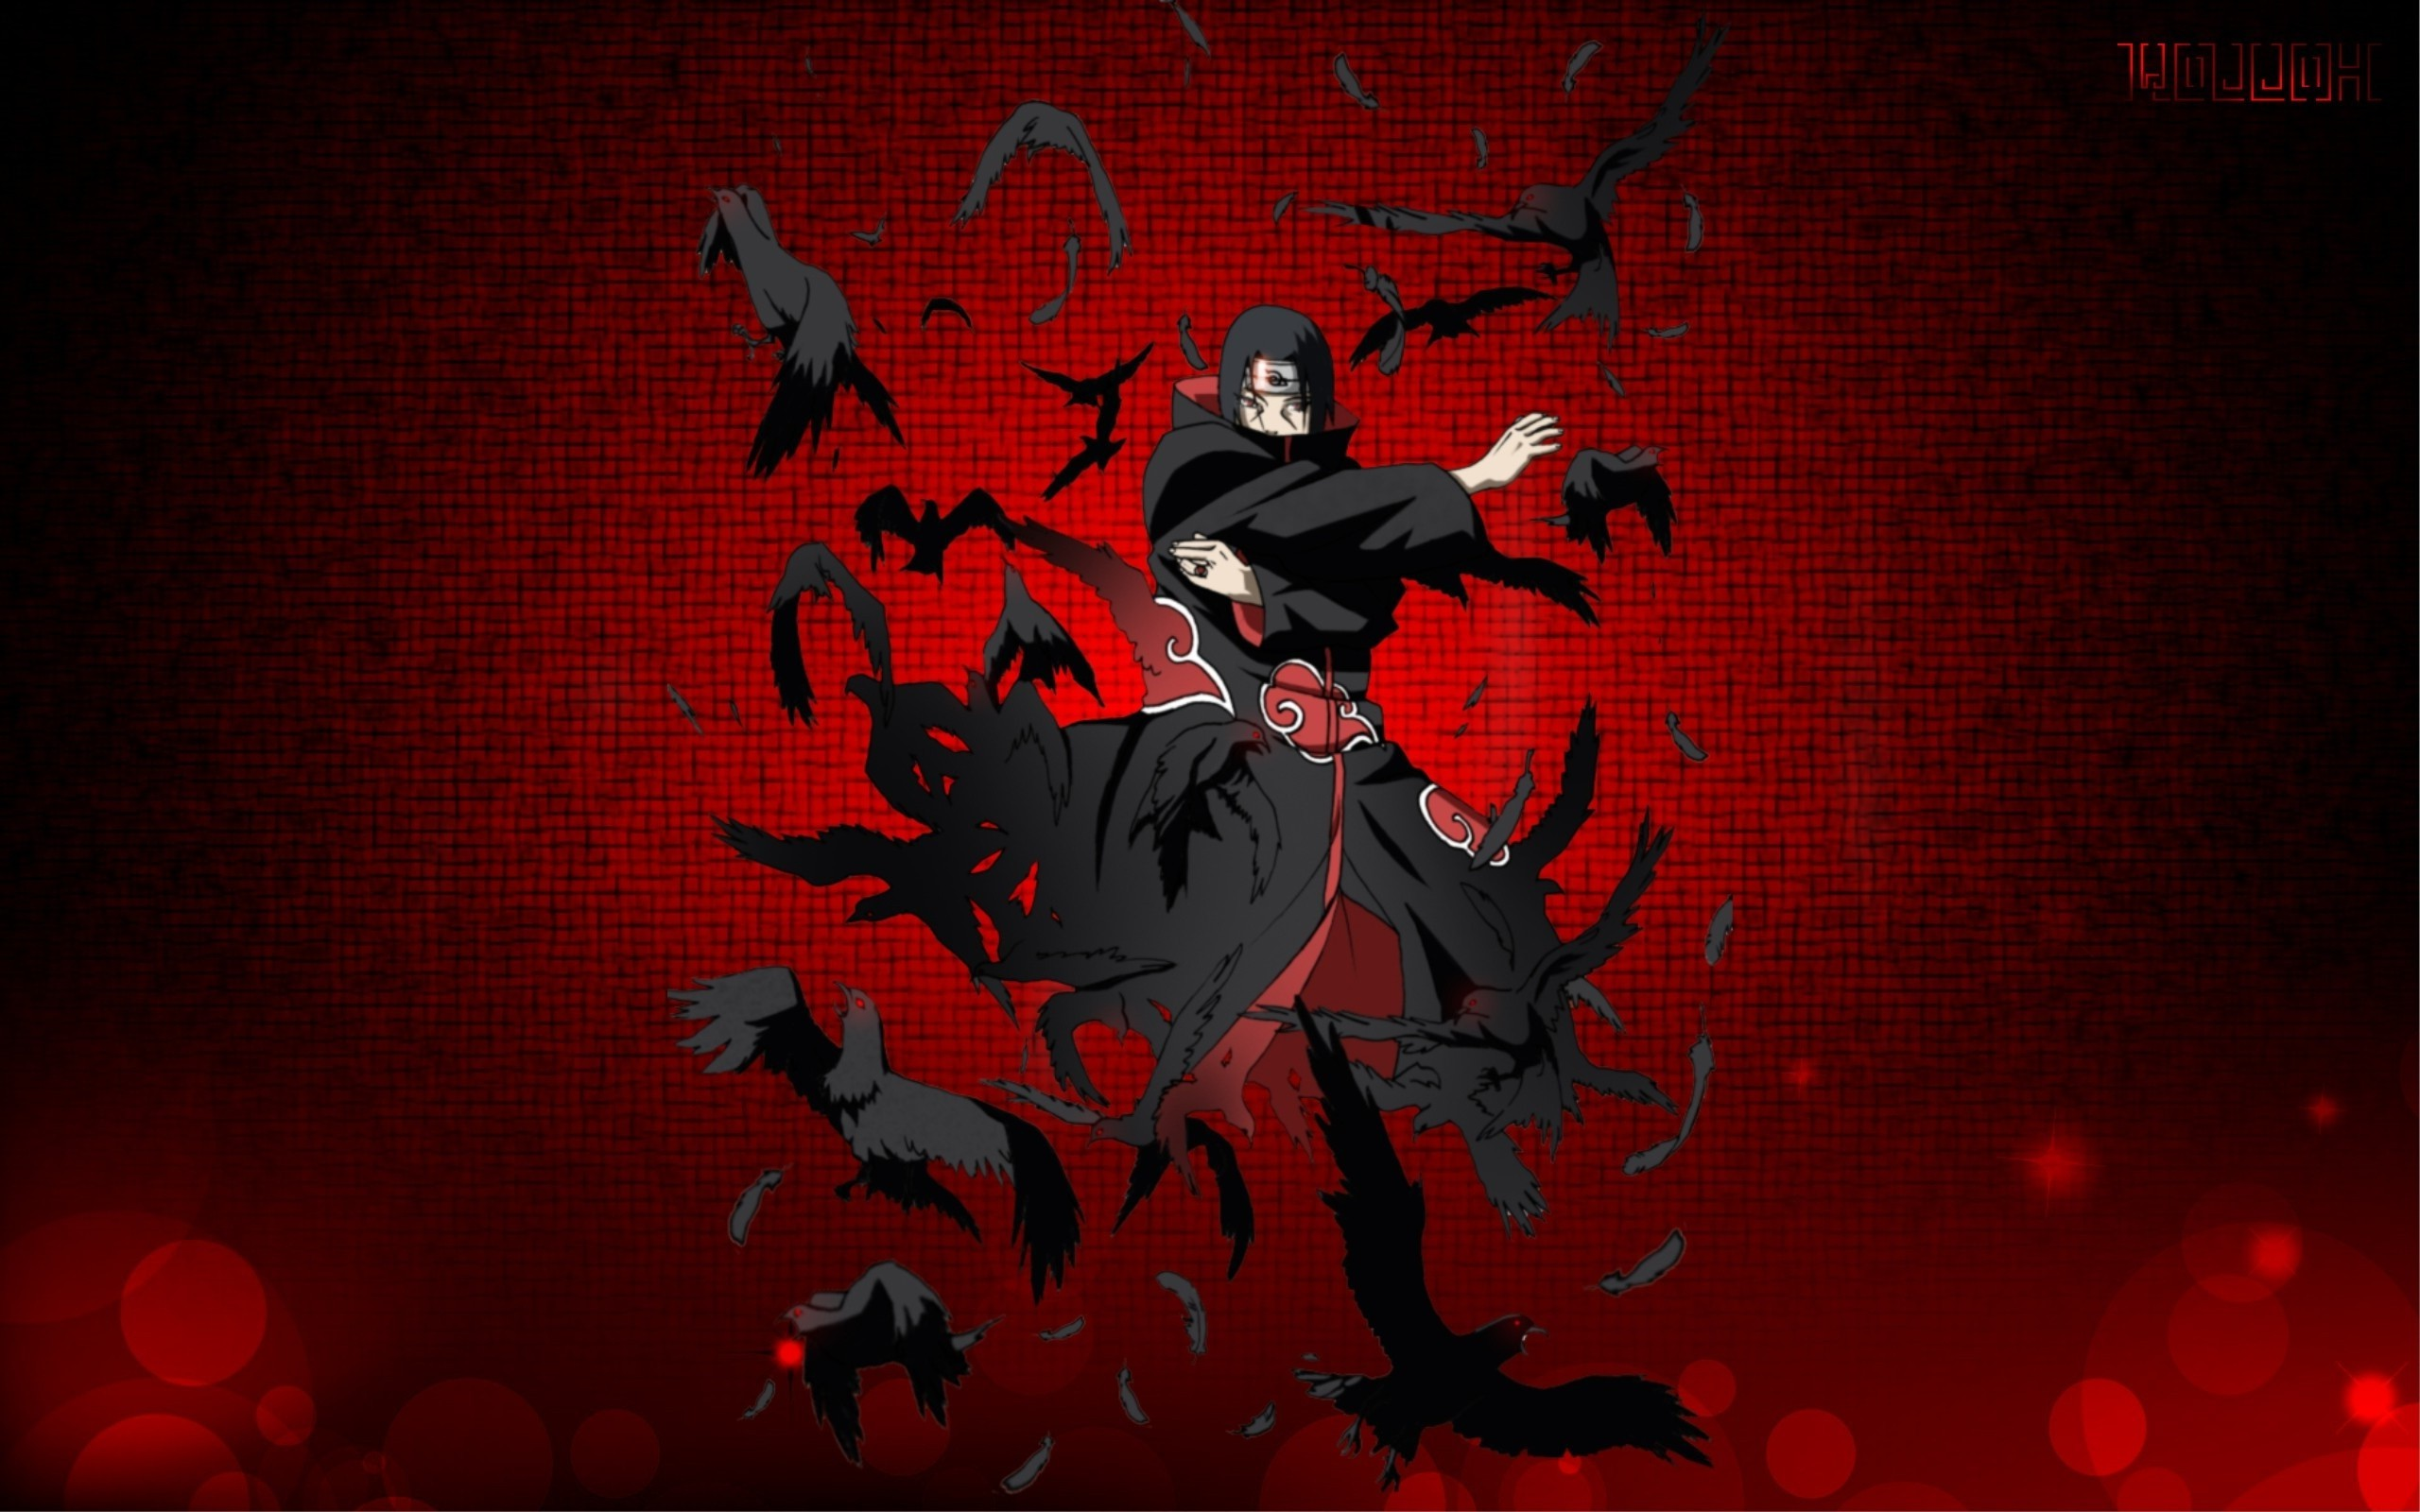 Wallpapers Naruto Shippuden Hd 2018 78 Pictures